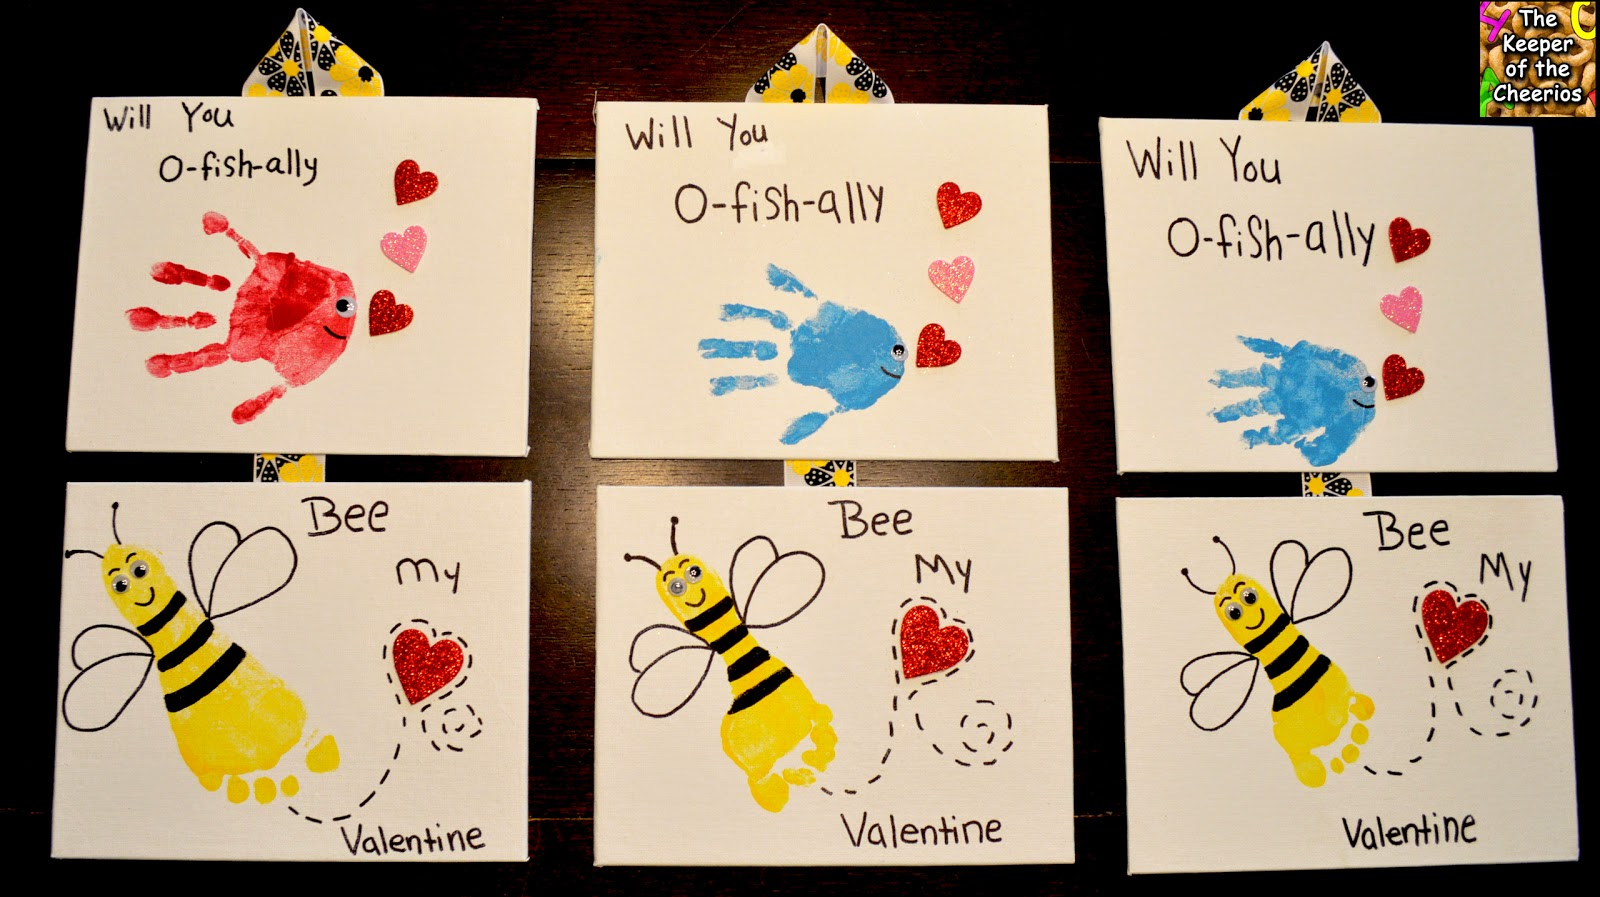 Valentines Day Hand And Footprints Will You O Fish Ally Bee My Valentine